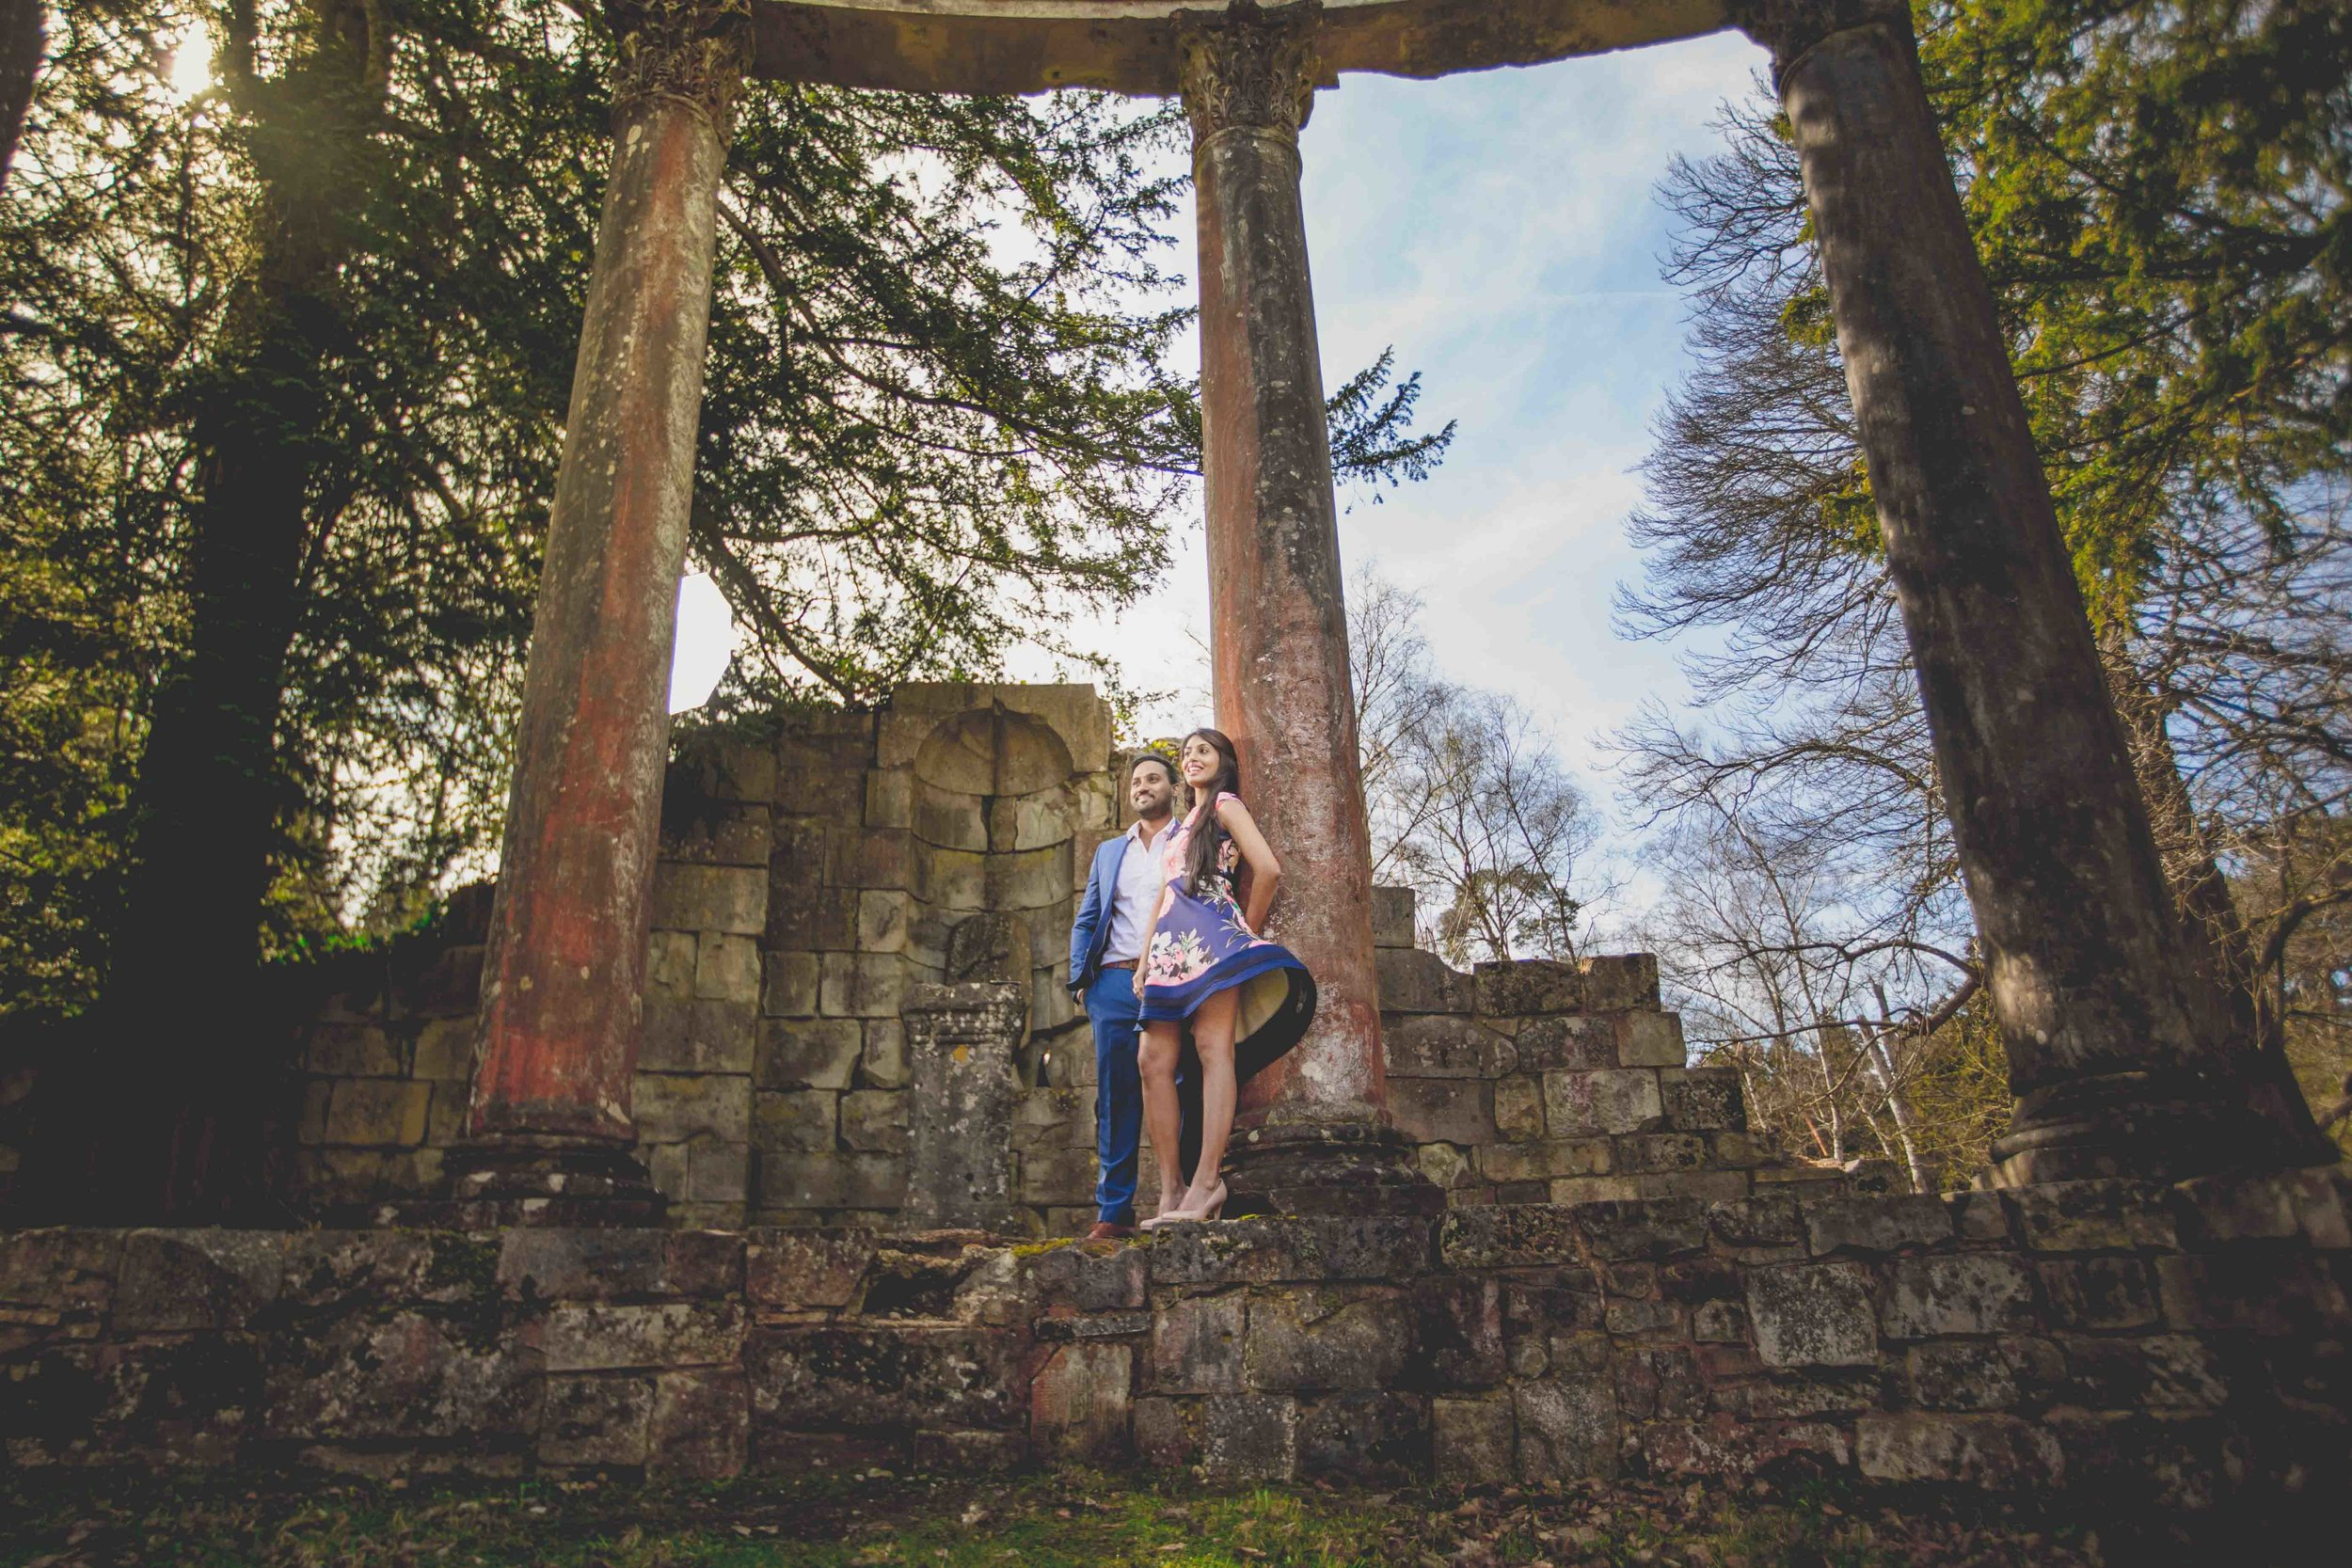 Virginia-waters-windsor-pre-wedding-engagement-shoot-female-asian-wedding-photographer-natalia-smith-photography-leptis-magna-ruins1.jpg